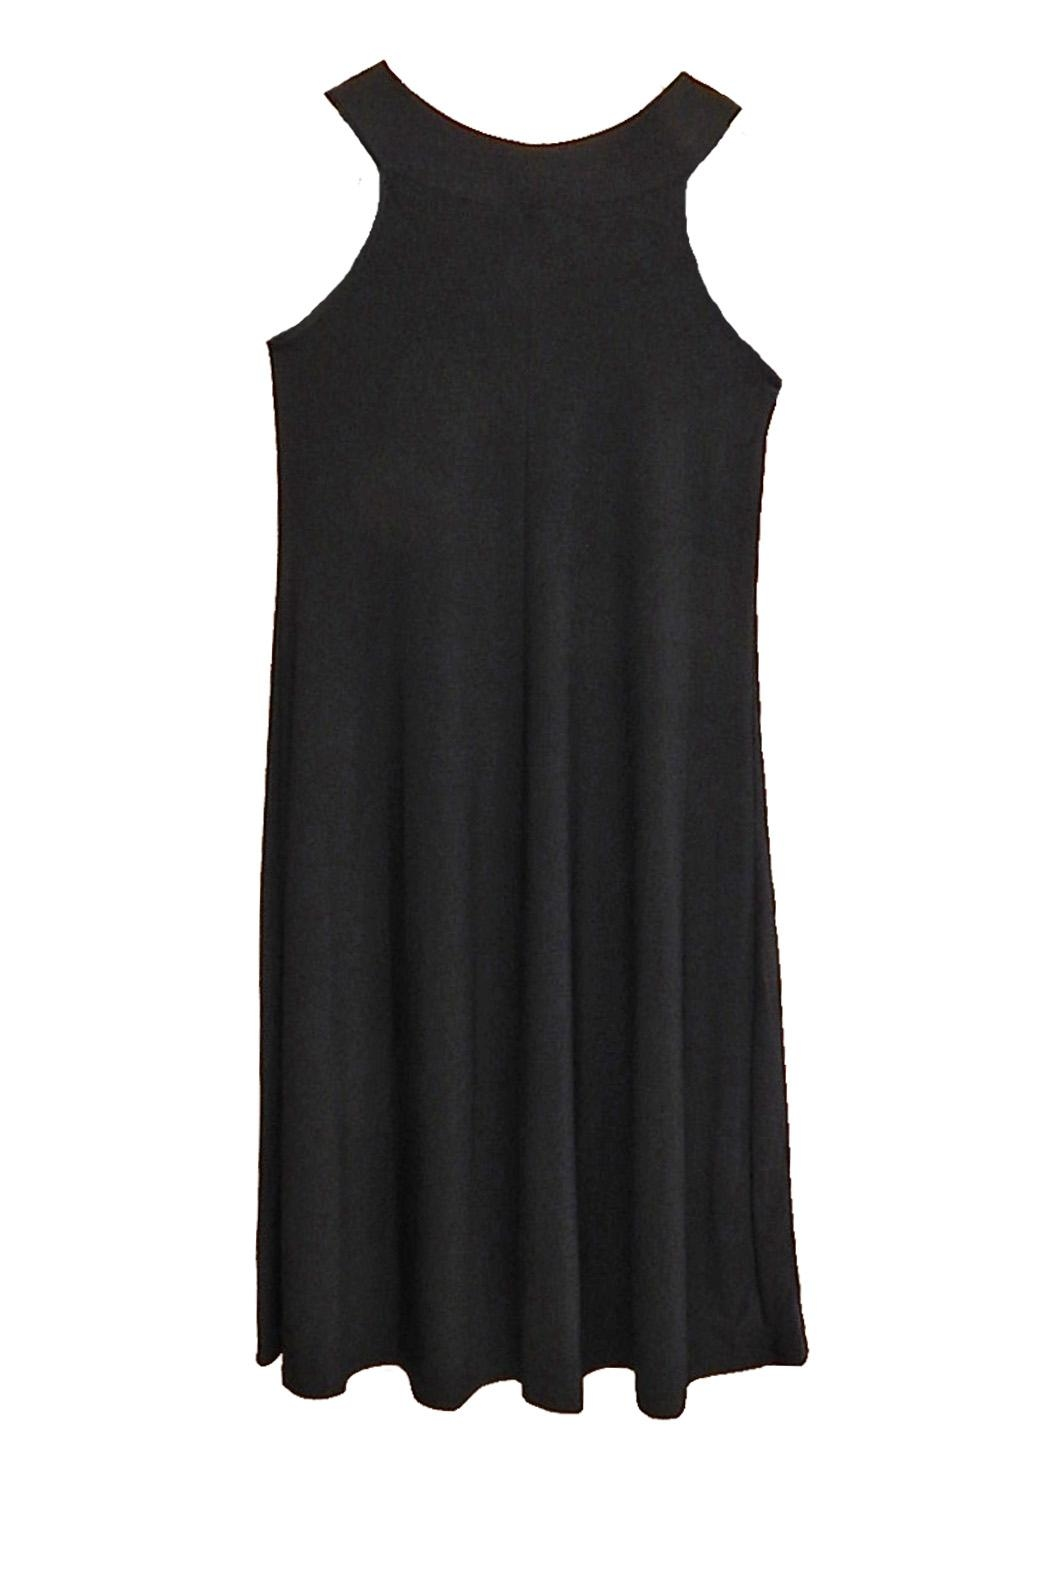 Ellen Parker Black Sleeveless Dress - Front Full Image